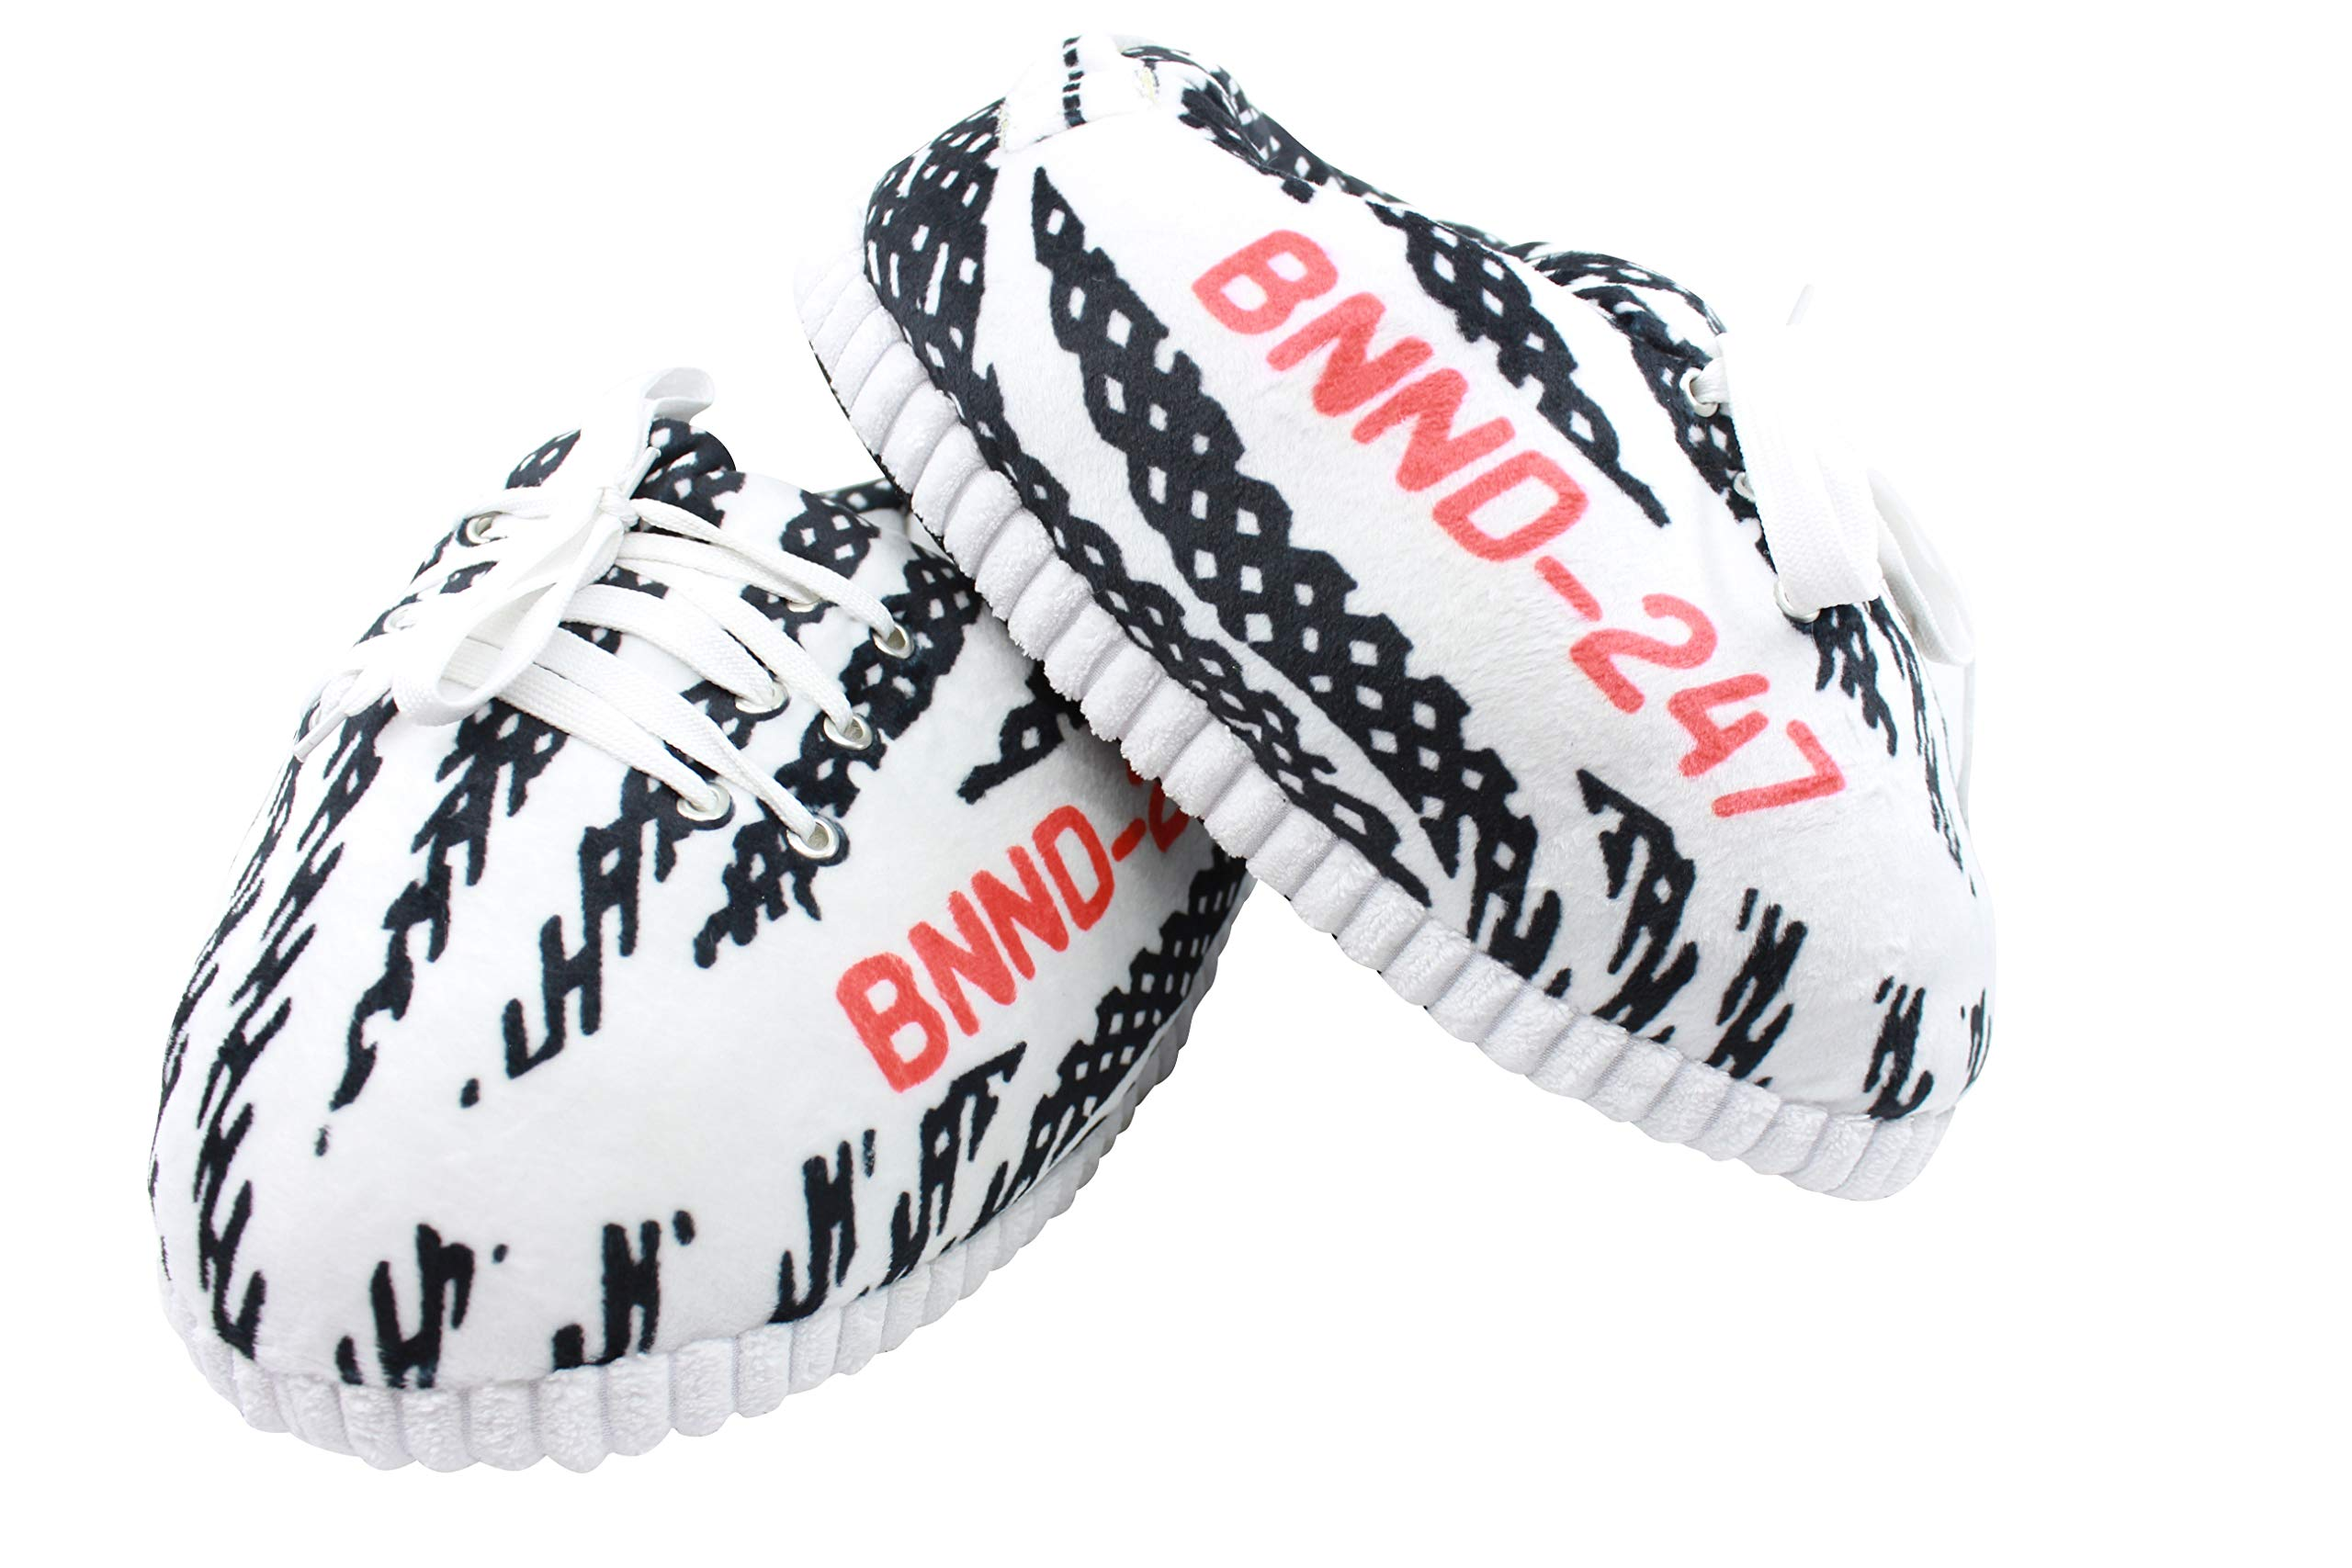 SoleSlip ZBRA Sneaker Slippers   Men and Women   Comfy and Cozy   Perfect for Lounging   Pure Polyester   One Size Fits All   Trendy Design   White and Black   Yeezy Slippers 2019 by SoleSlip